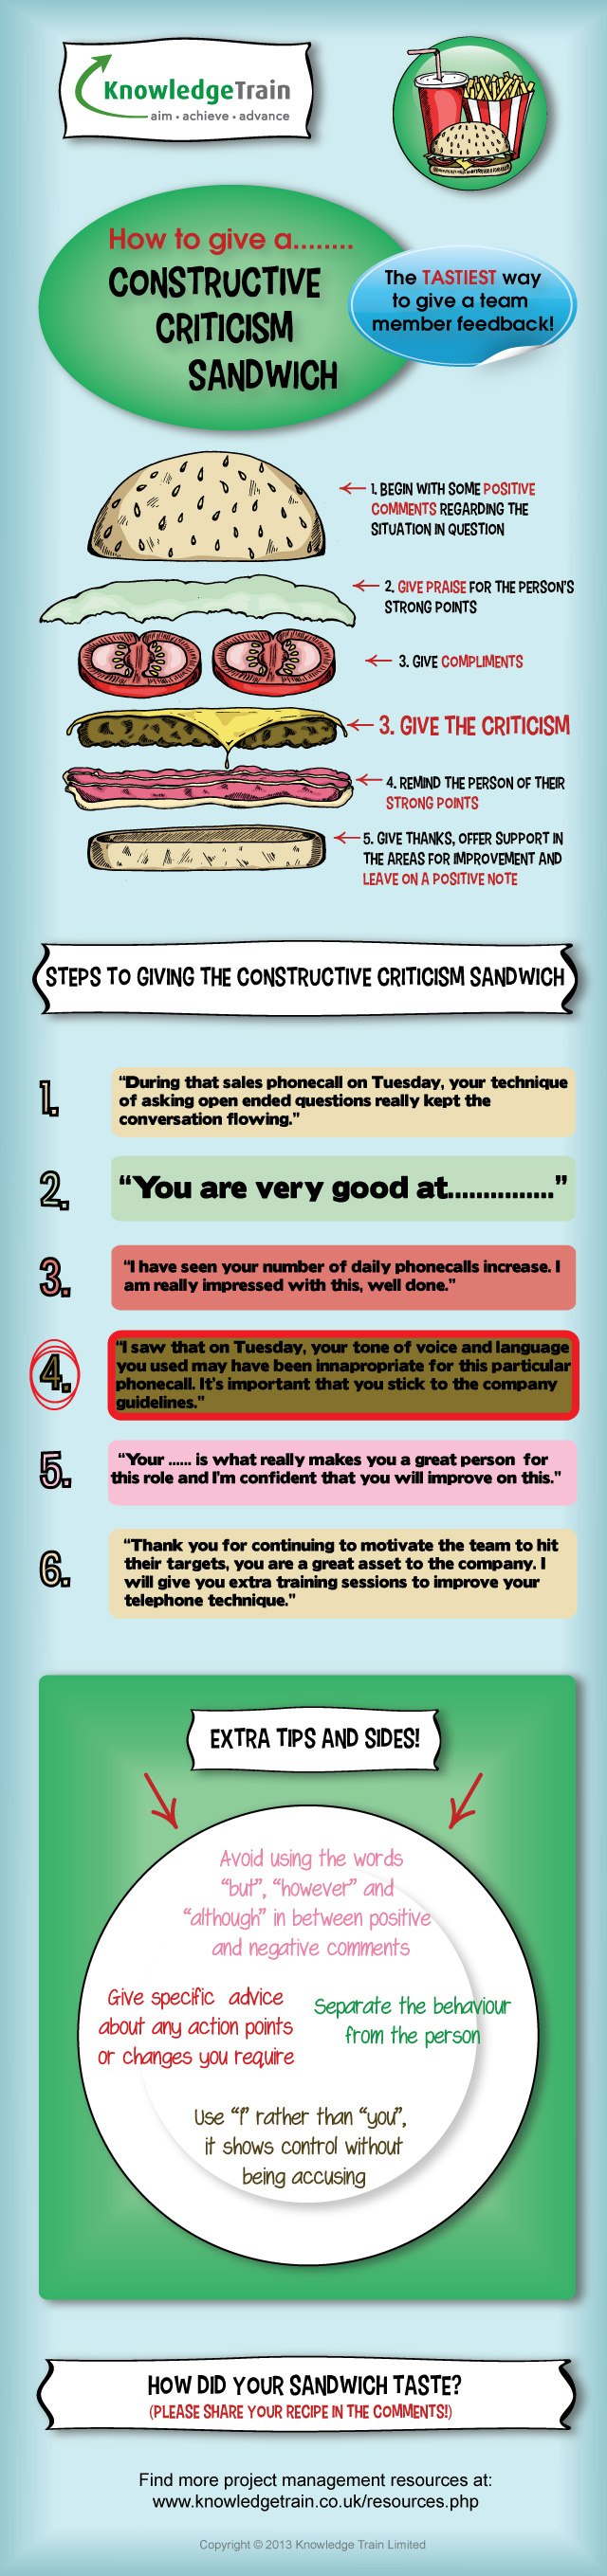 how-to-give-a-constructive-criticism-sandwich-infographic